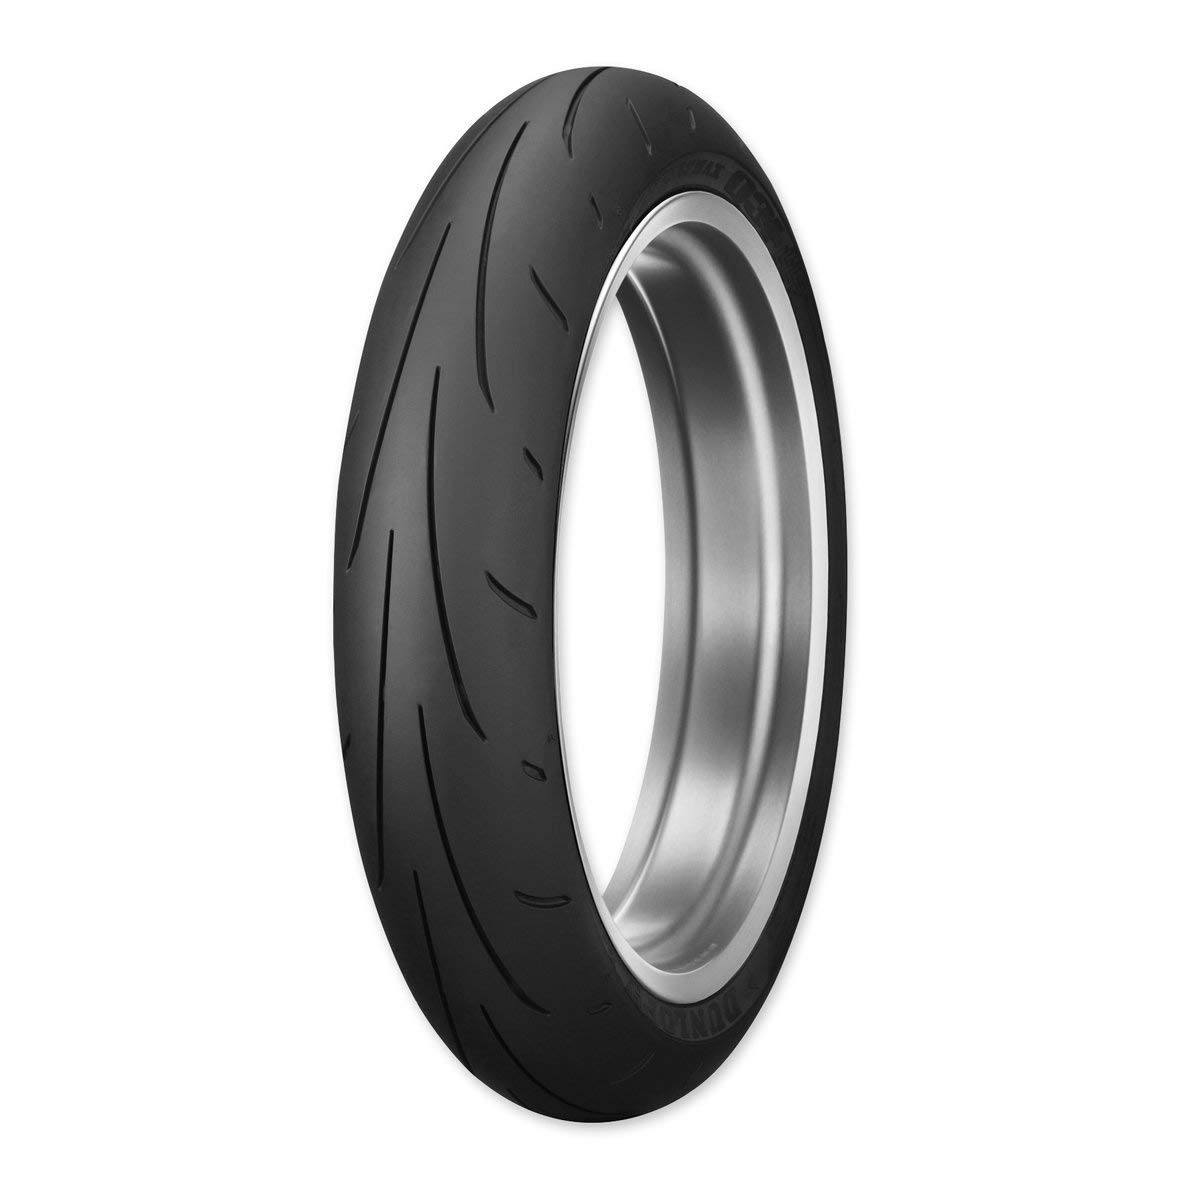 Dunlop Sportmax Q3+ Front Motorcycle Tire 120/70ZR-17 (58W) - Fits: Aprilia Caponord 1200 ABS 2014-2018 by Dunlop Tires